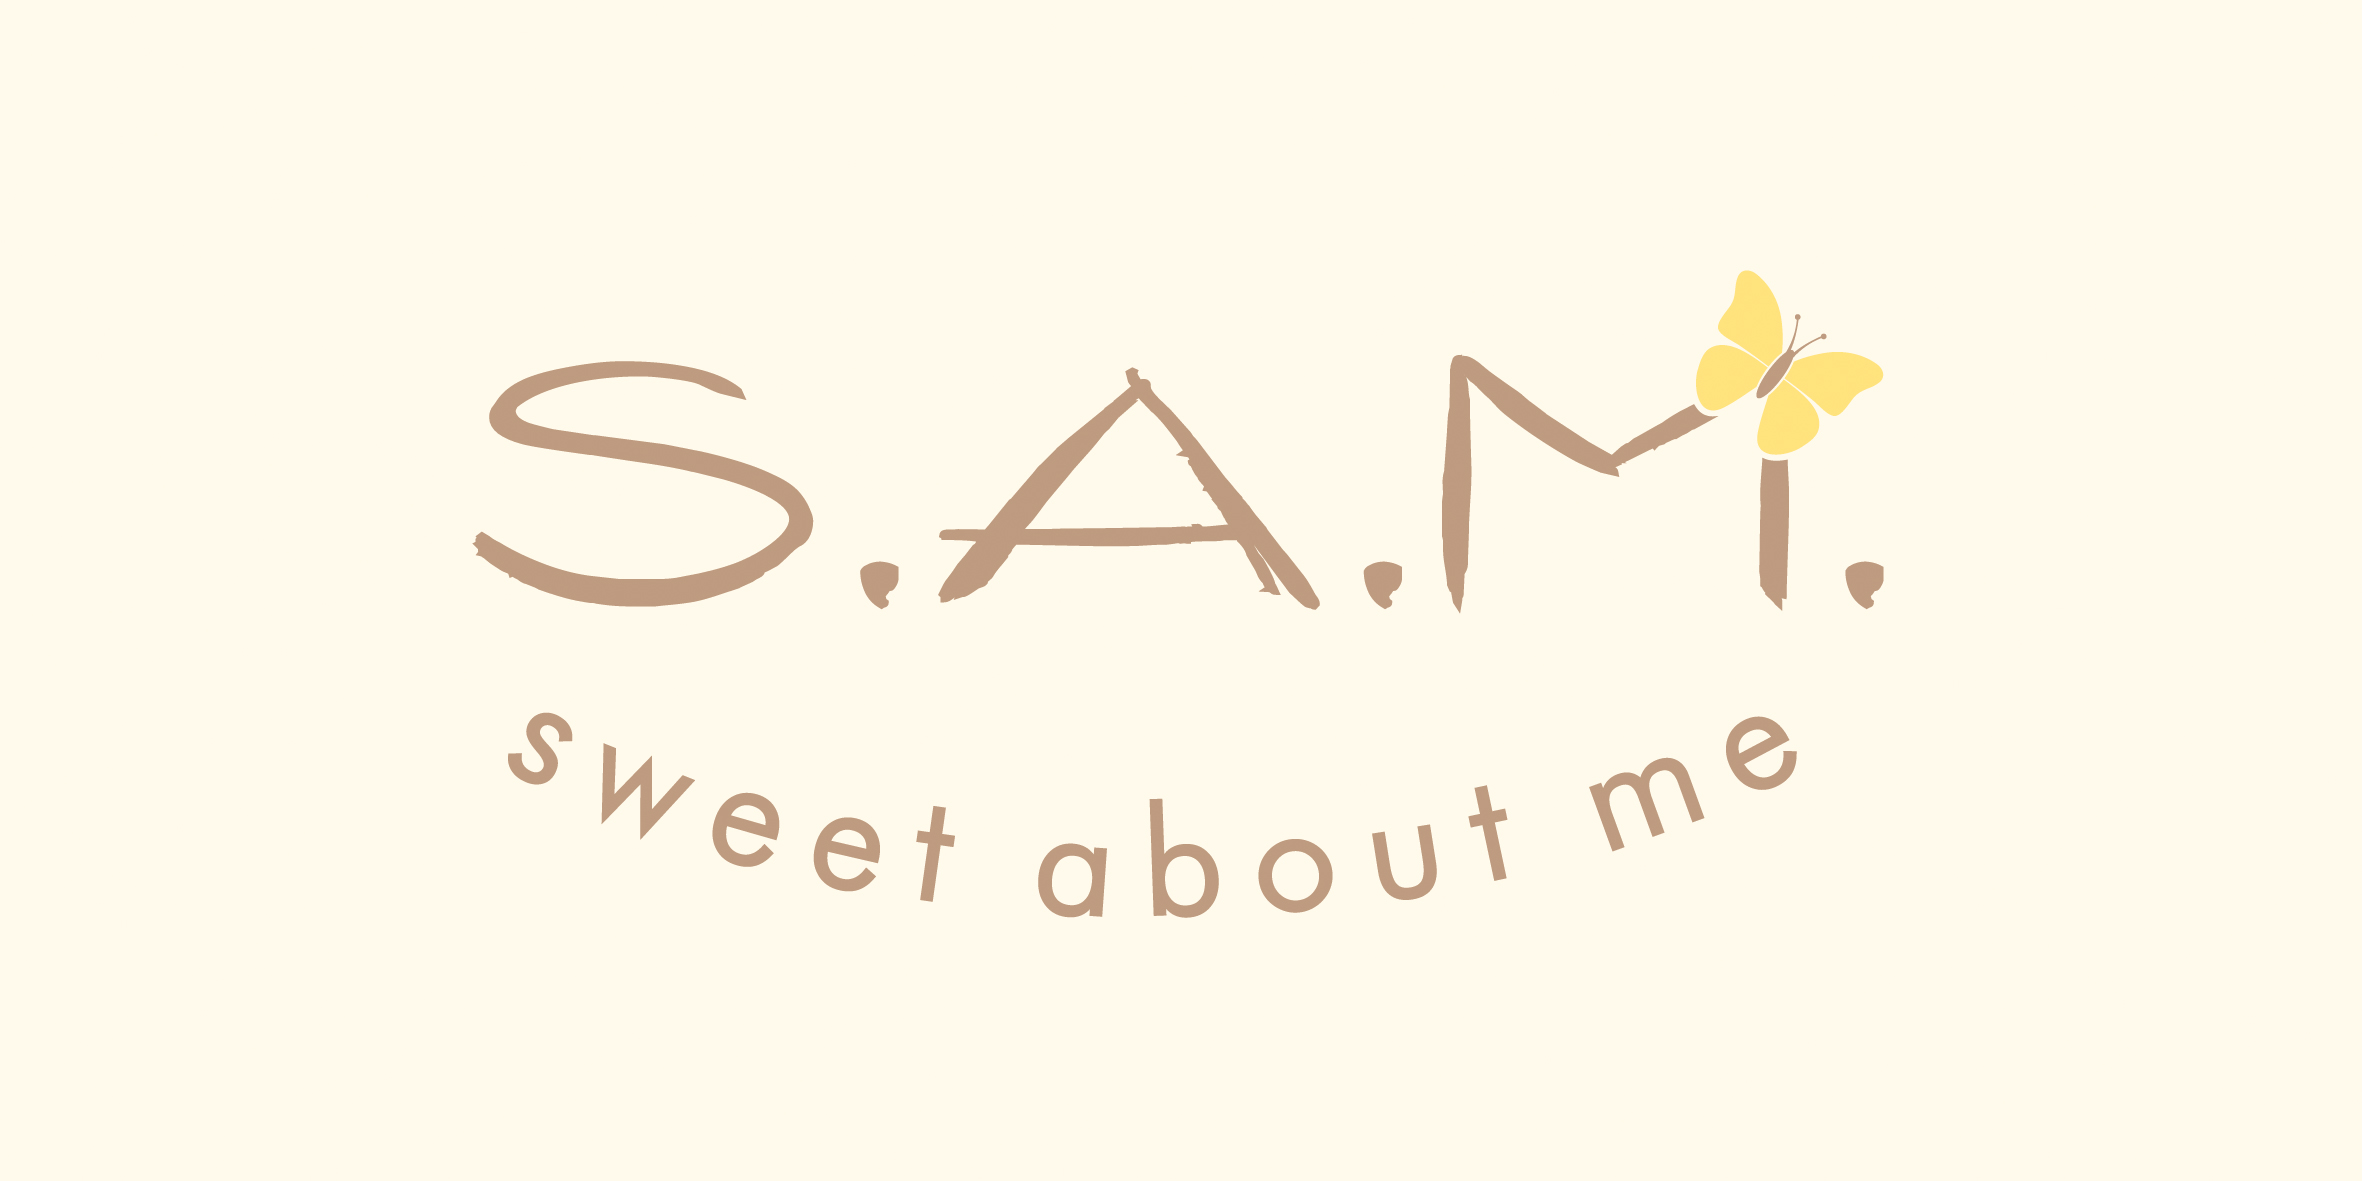 S.A.M. - sweet about me